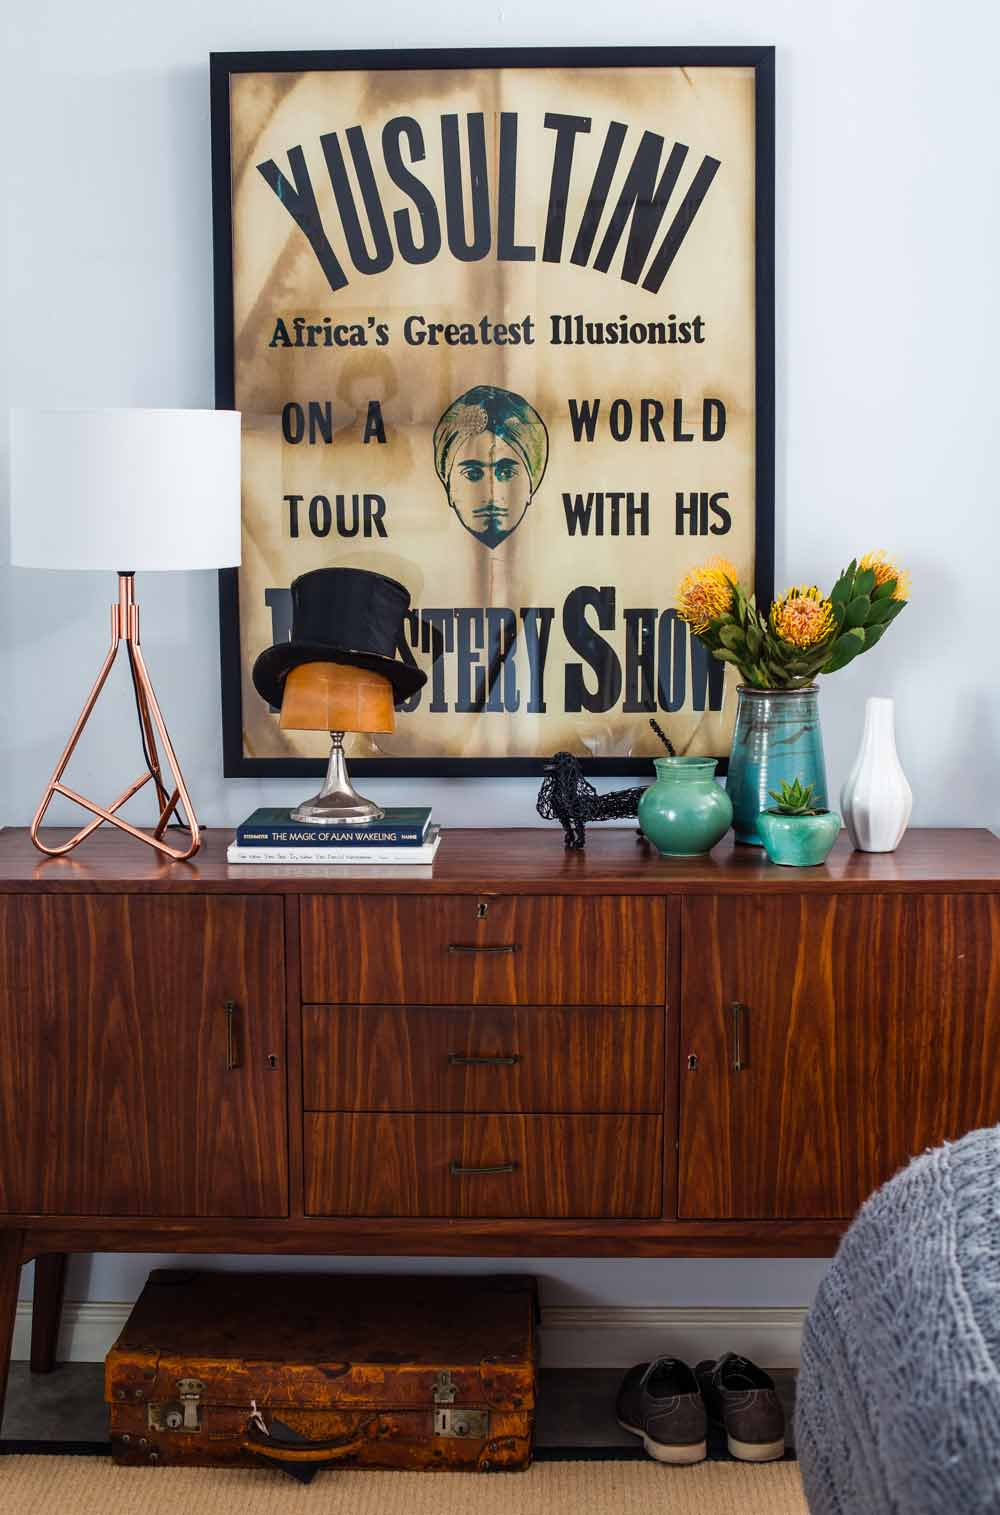 Doing It His Way In Cape Town, South Africa, on Design*Sponge